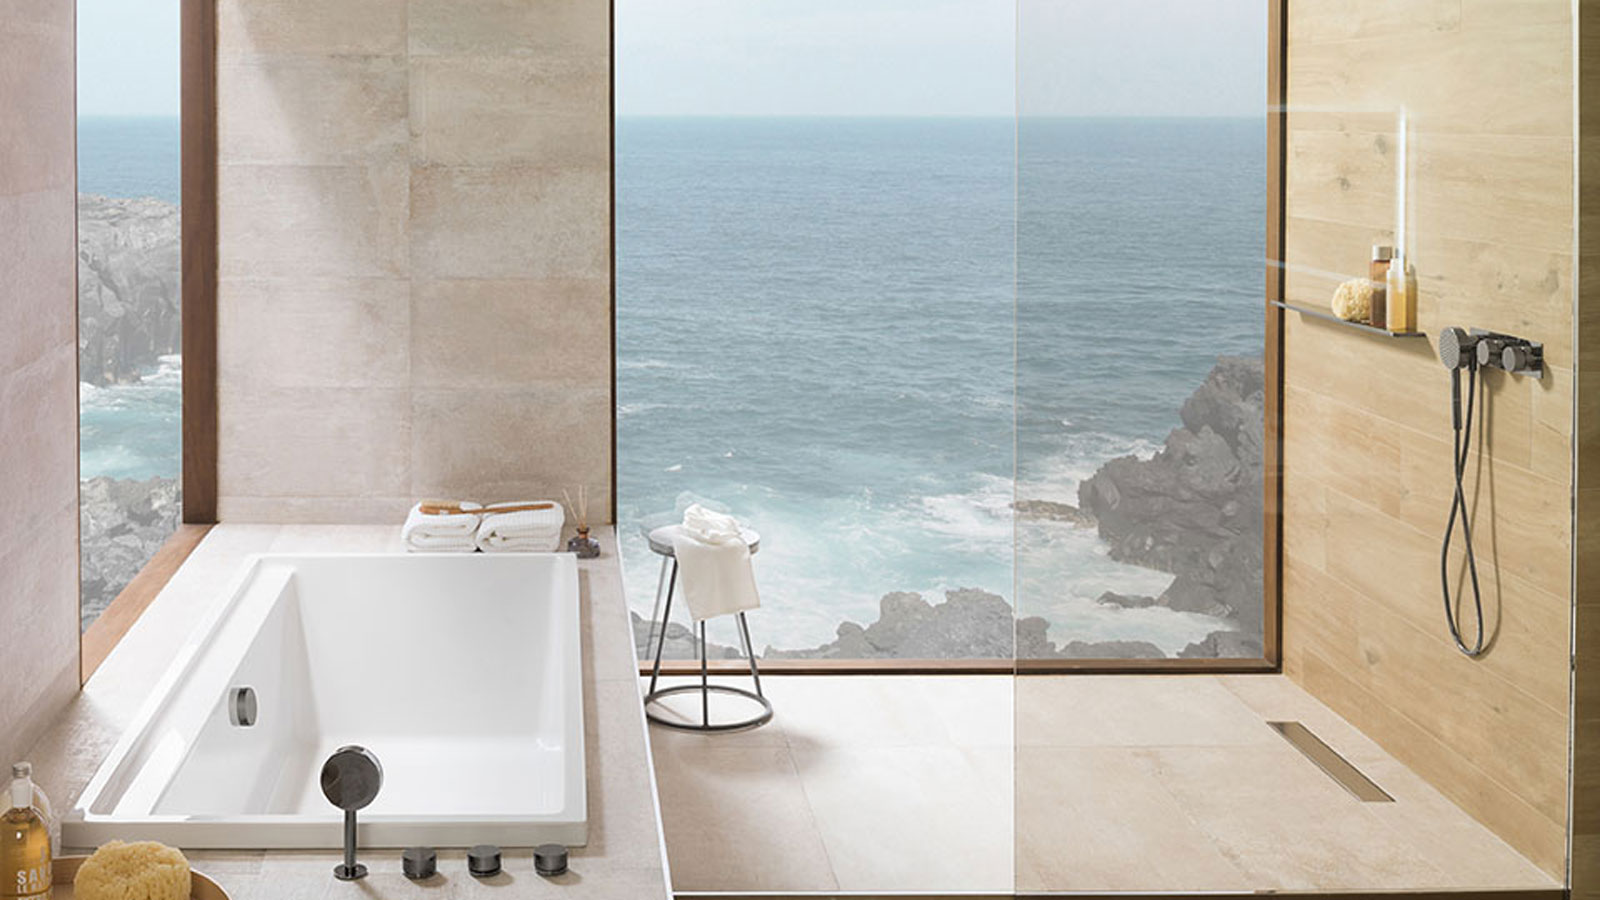 Bath and shower taps trending this spring